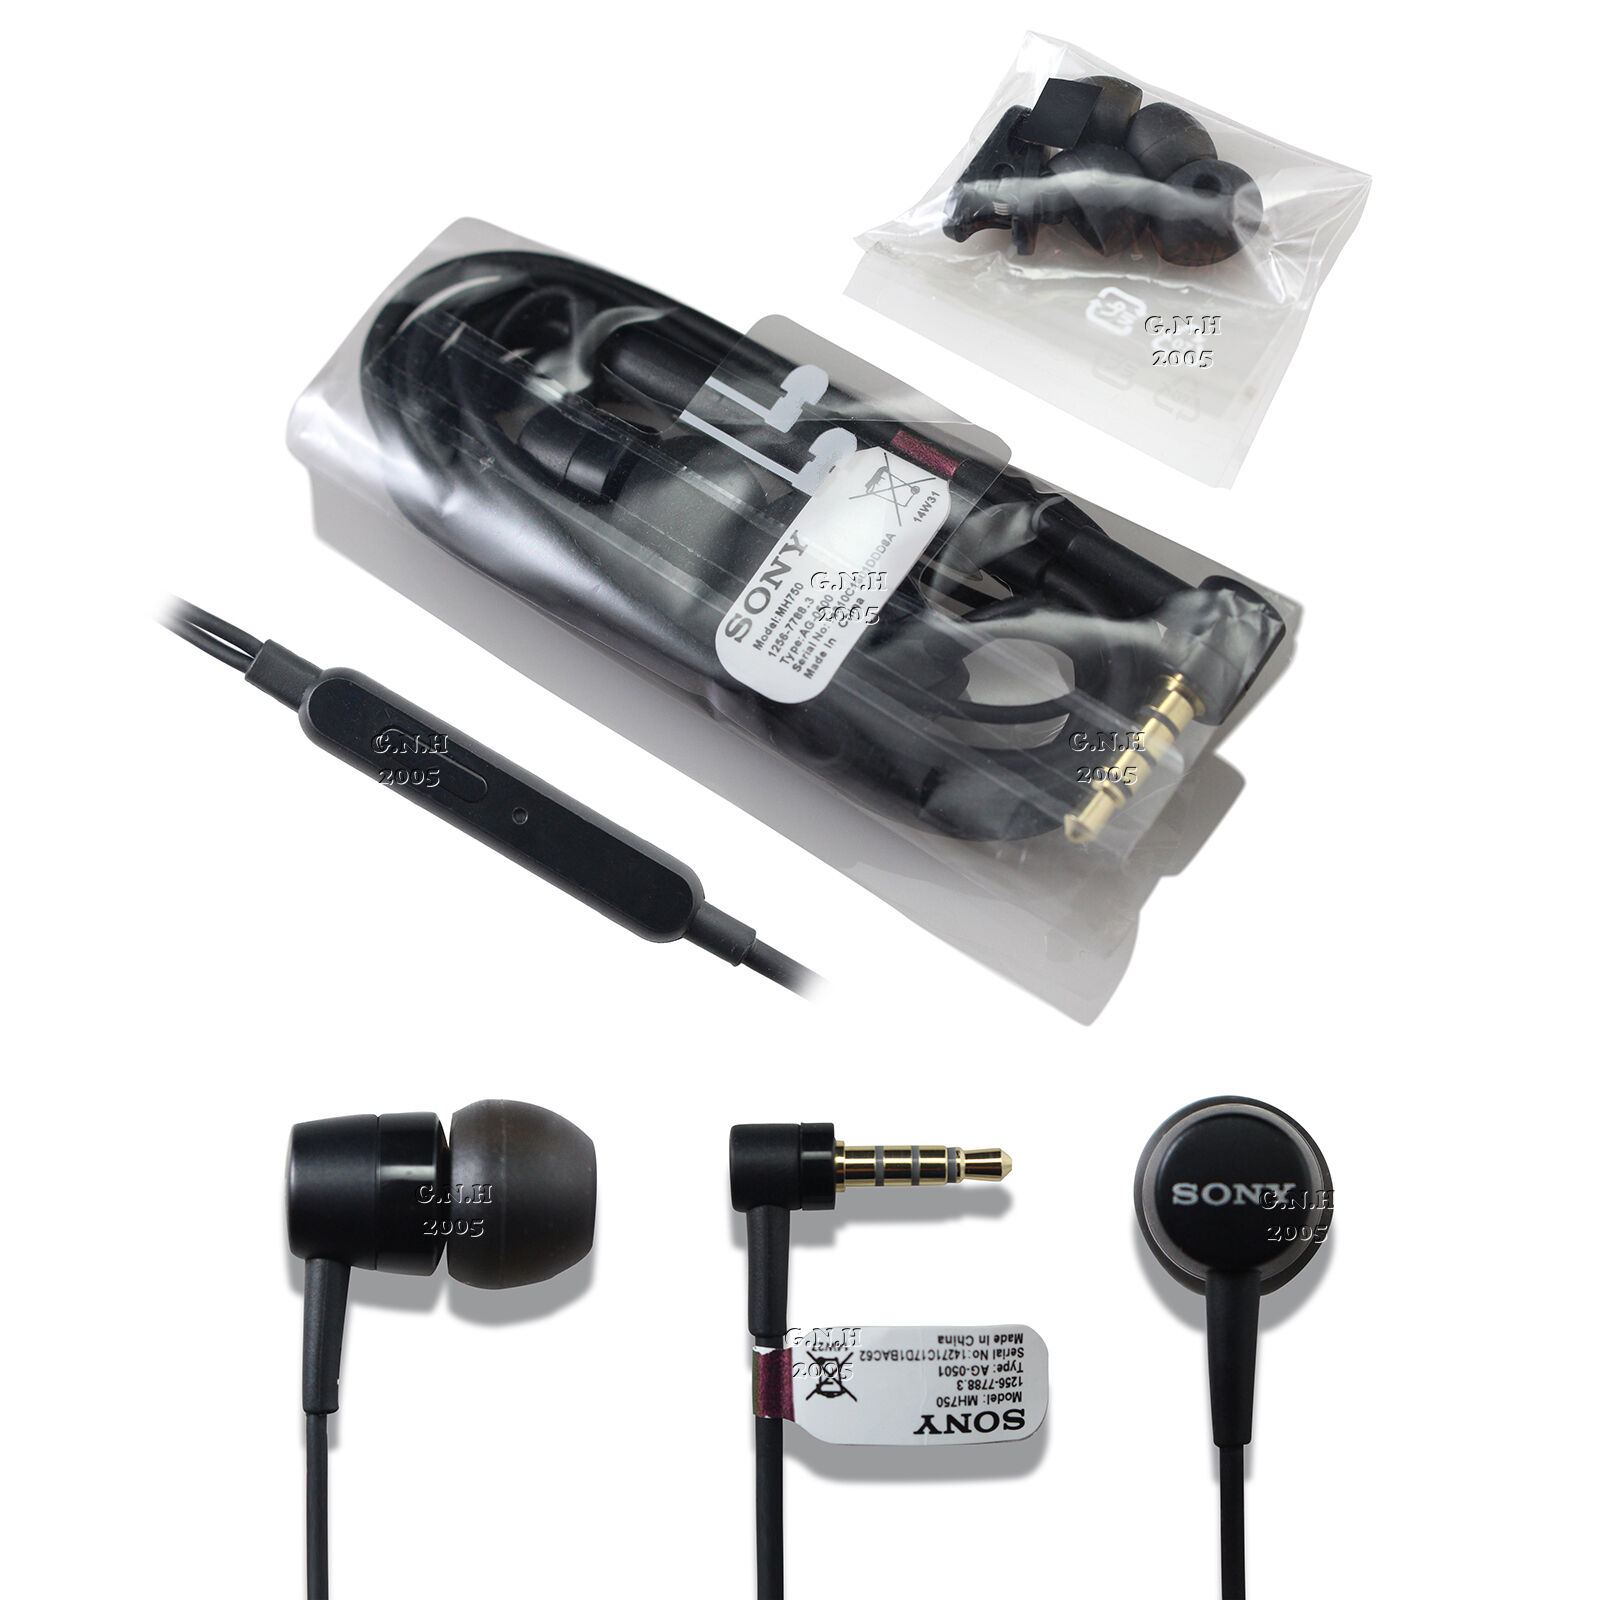 Genuine Sony Mh 750 Earphones Headphones Xperia Z Z2 Z3 Iphone 5s 6 Headset Mh750 1 Of 3free Shipping